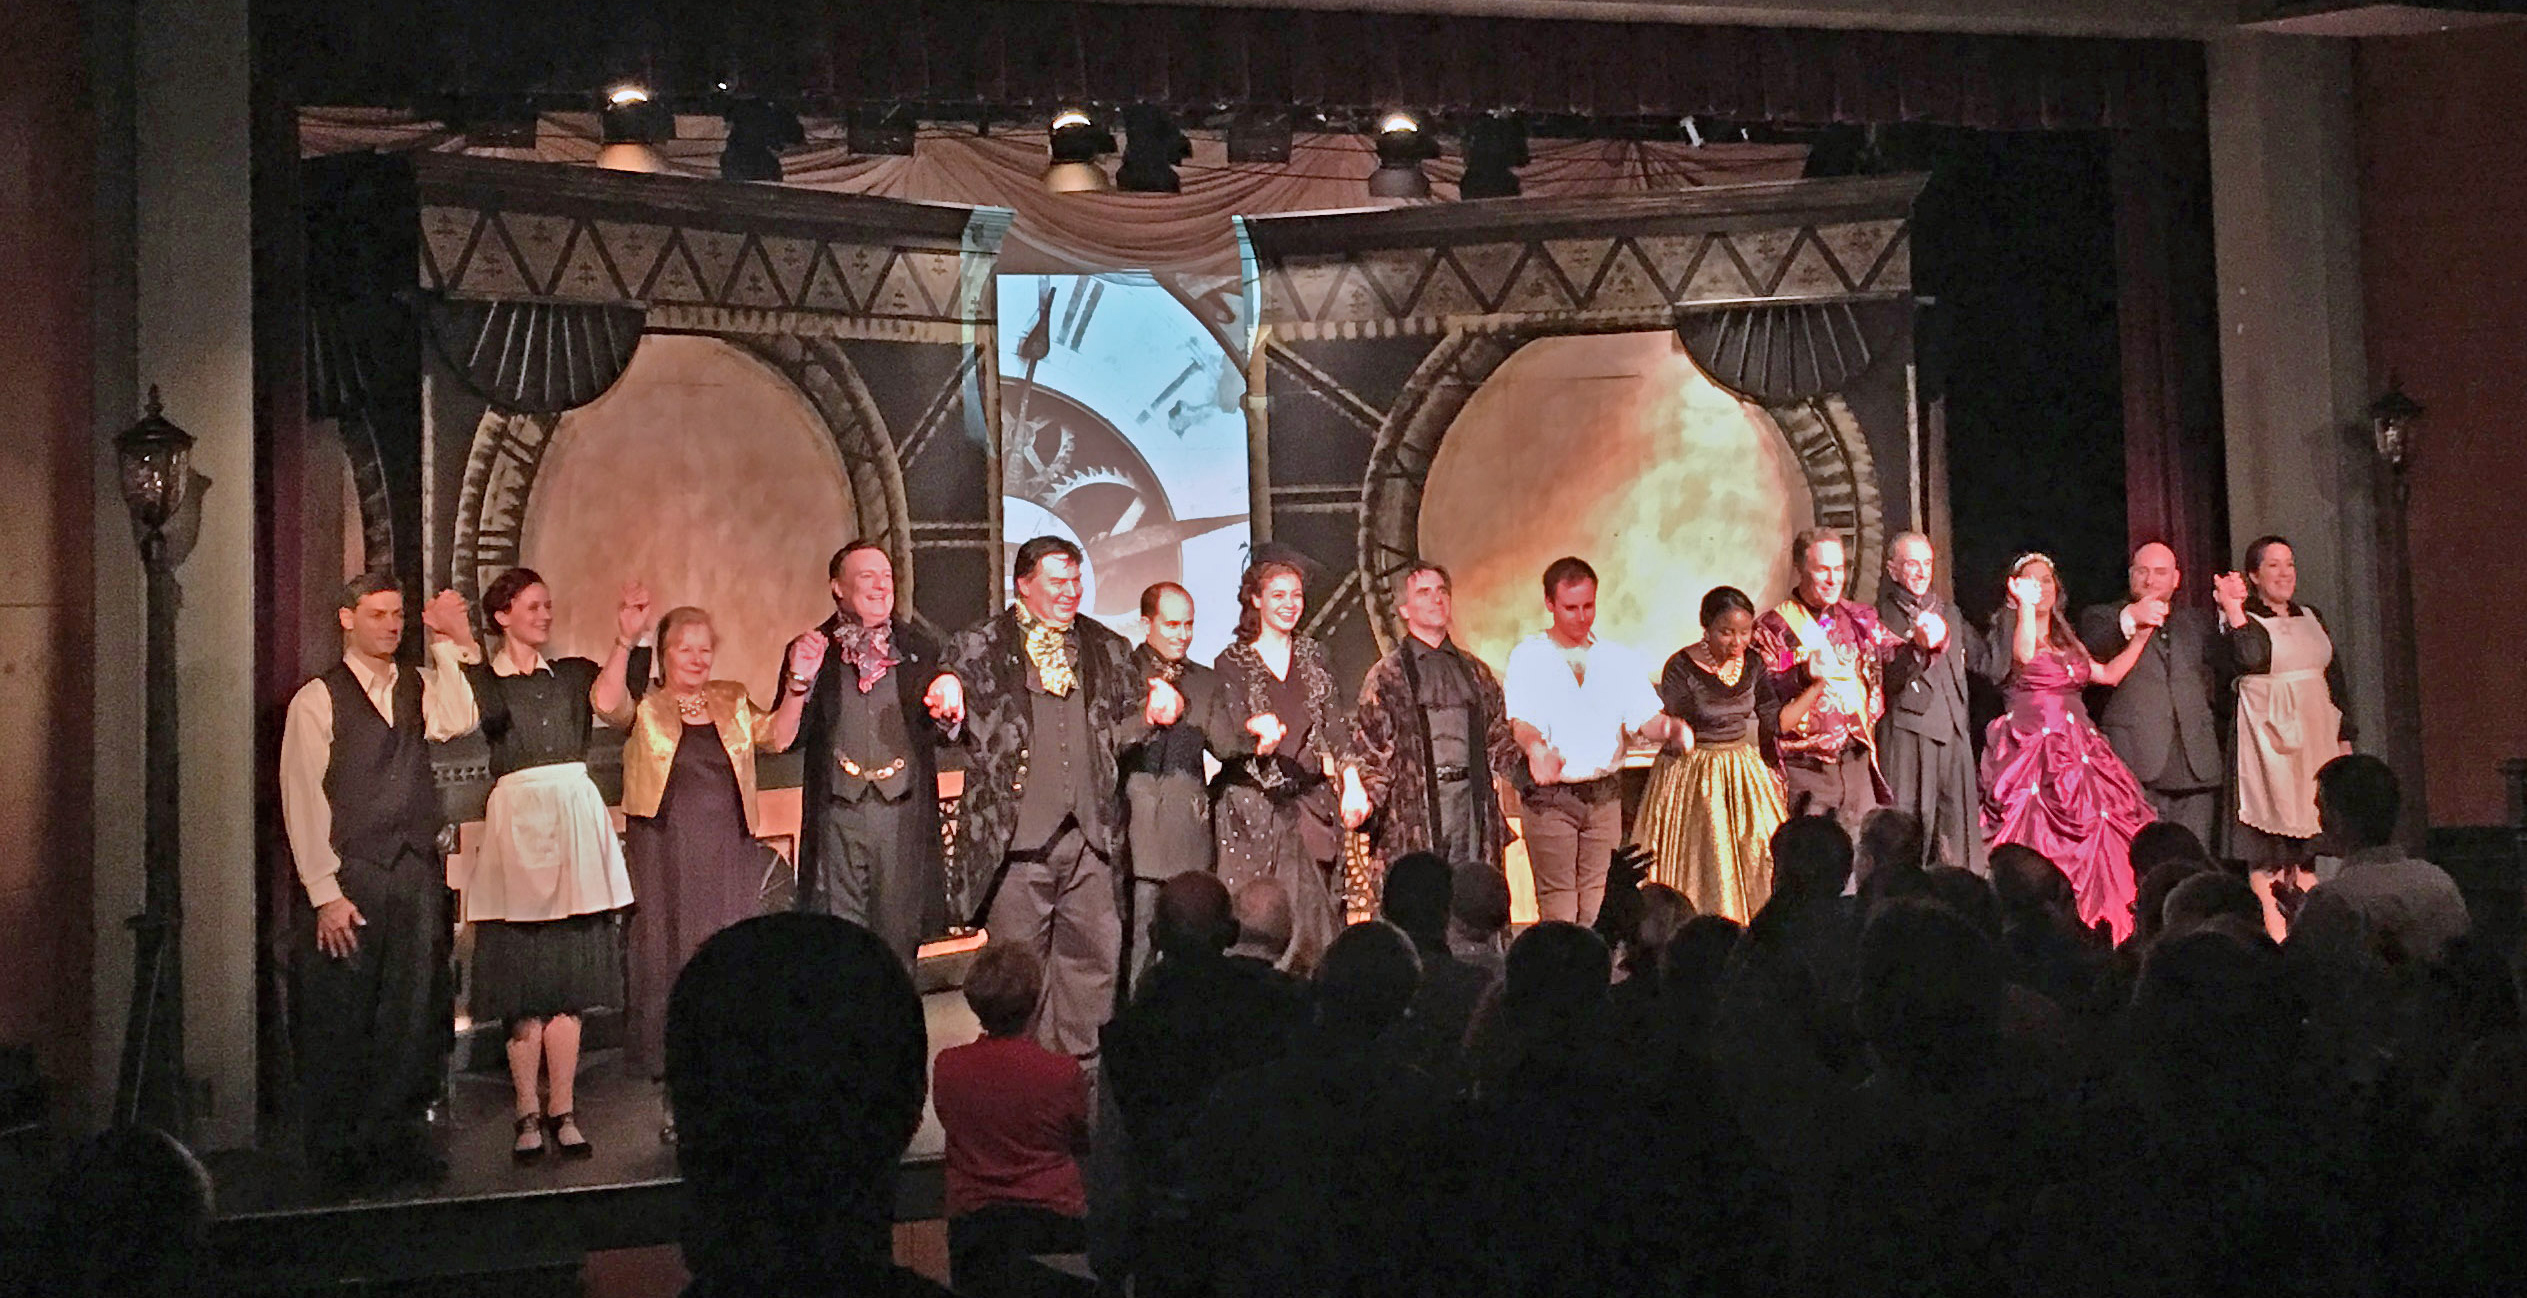 ppf-amadeus-saturday-10-1-curtain-call-ovation-2-photo-by-chip-gertzog-providence-players